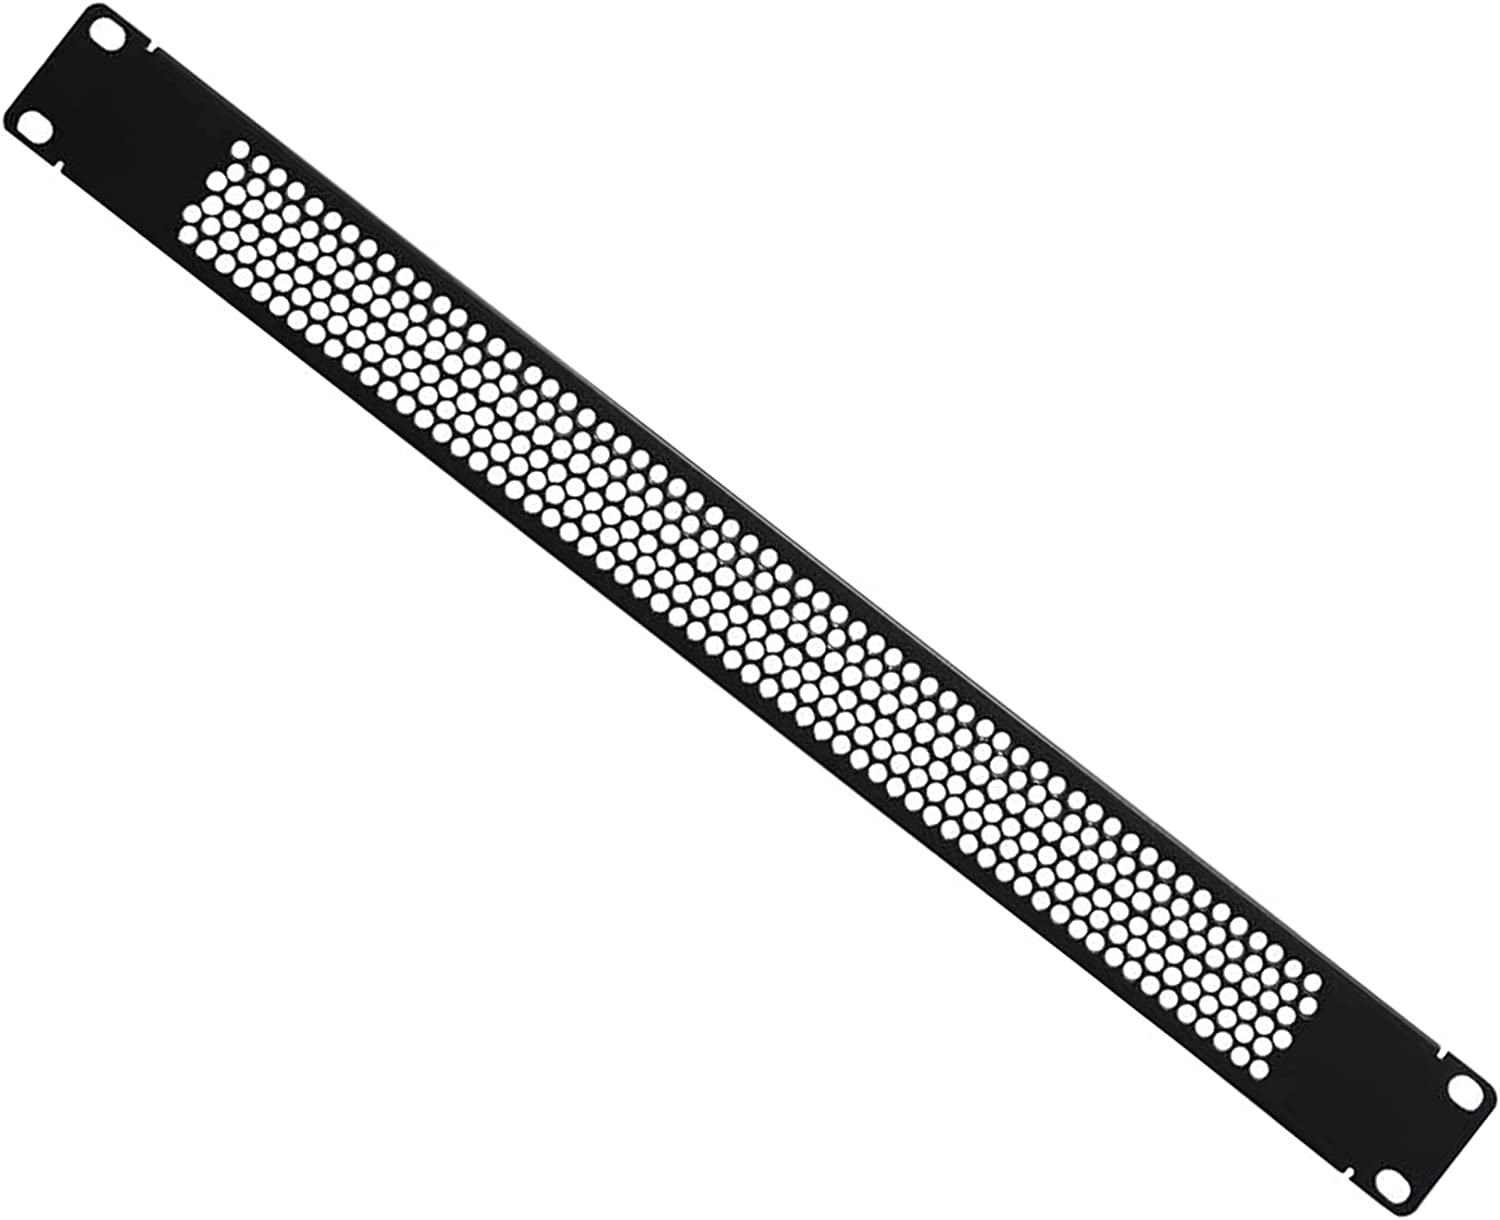 1U Black Blank Rack Mount Panel Spacer with Venting for Cabinet or 19